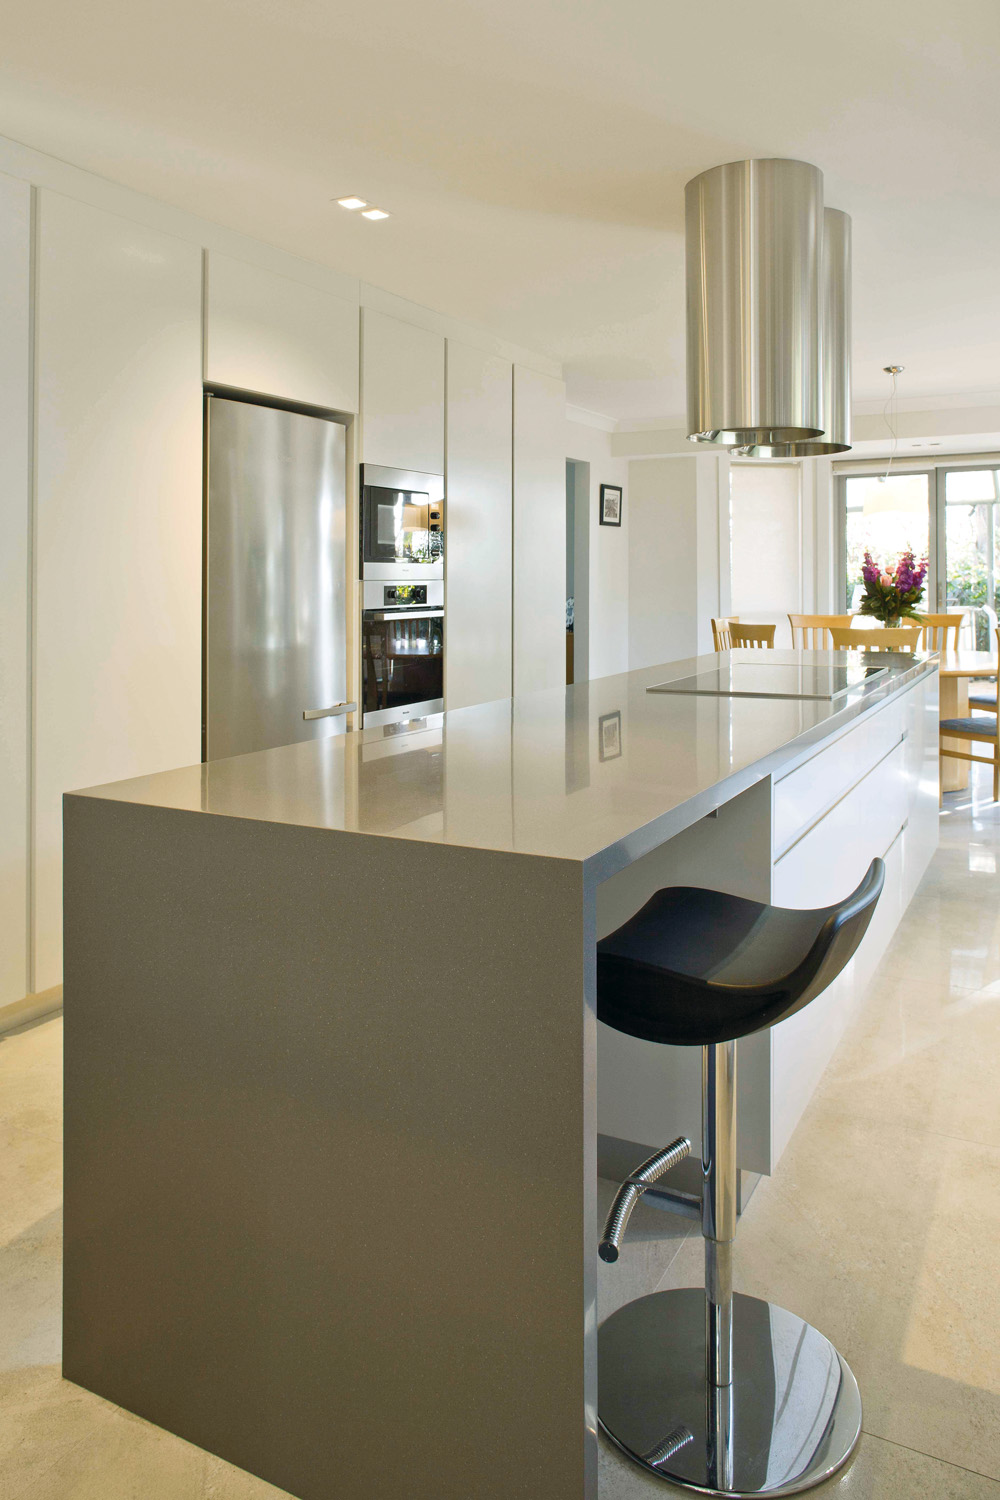 Functional, edgy and spacious kitchen design